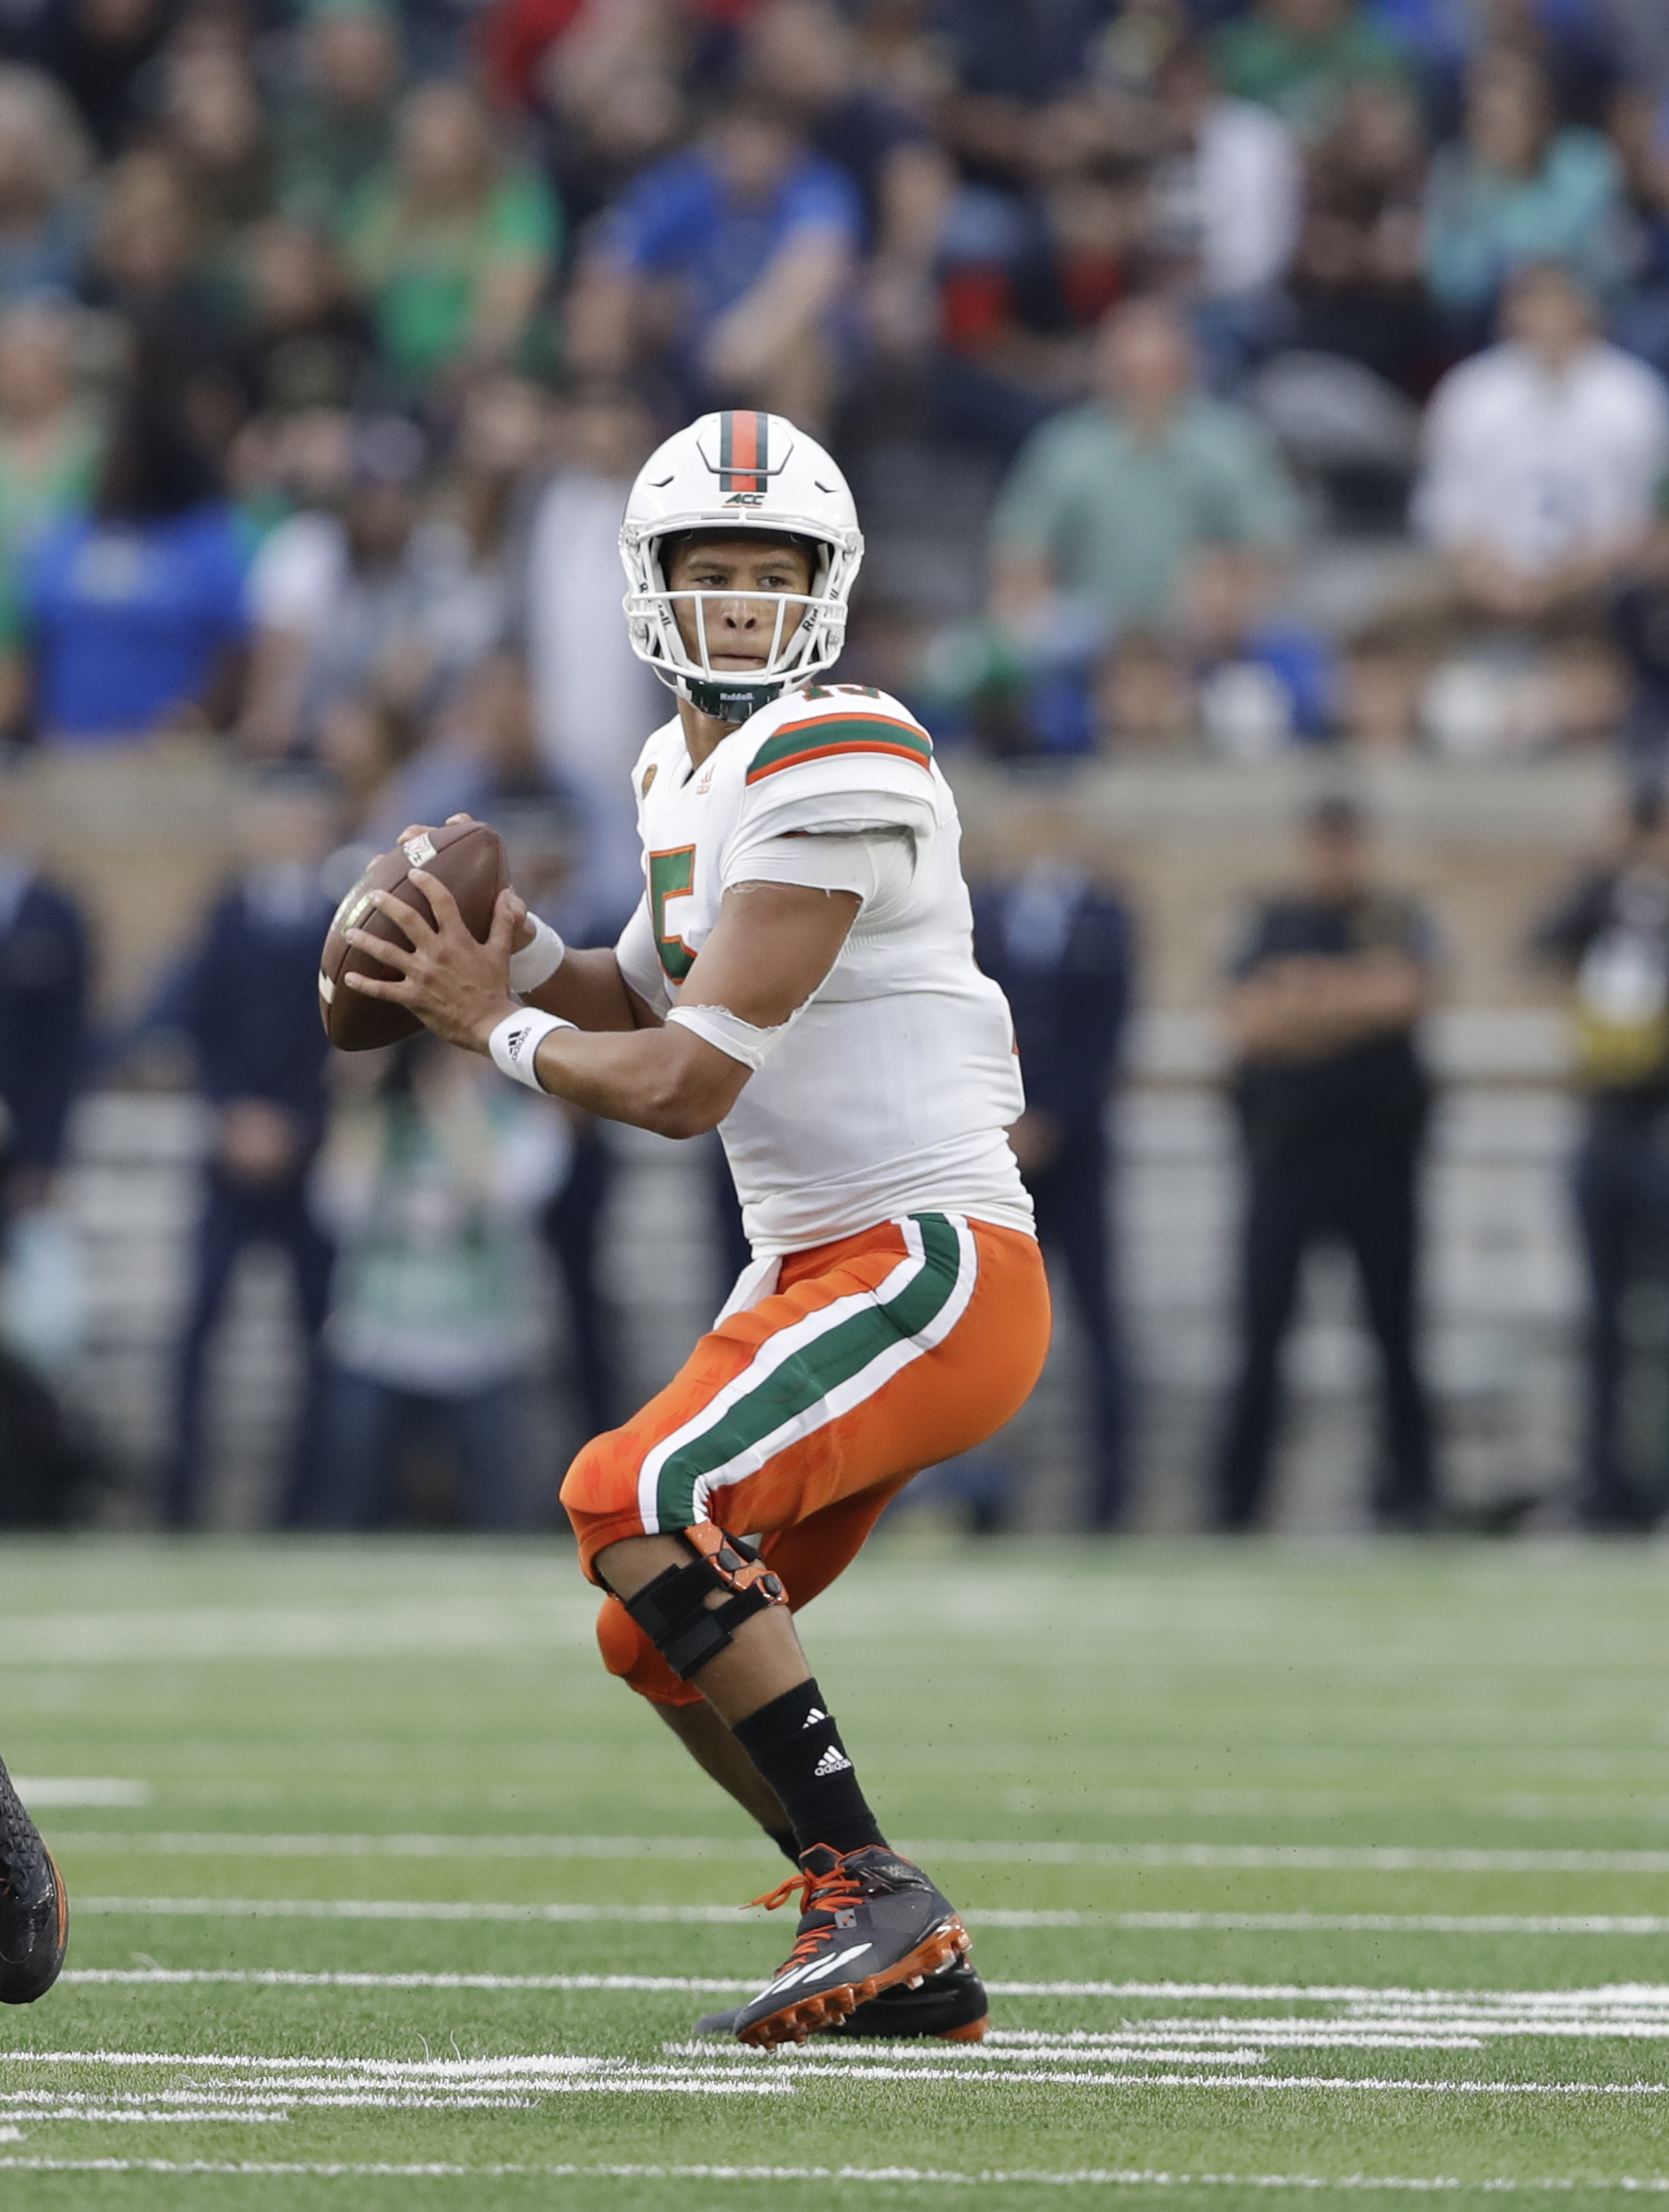 FILE - This Oct. 29, 2016 file photo shows Miami quarterback Brad Kaaya looking to throw during the second half of an NCAA college football game against Notre Dame in South Bend, Ind. Kaaya, coming off one of his best games _ a four-TD-passing, one-TD-rus